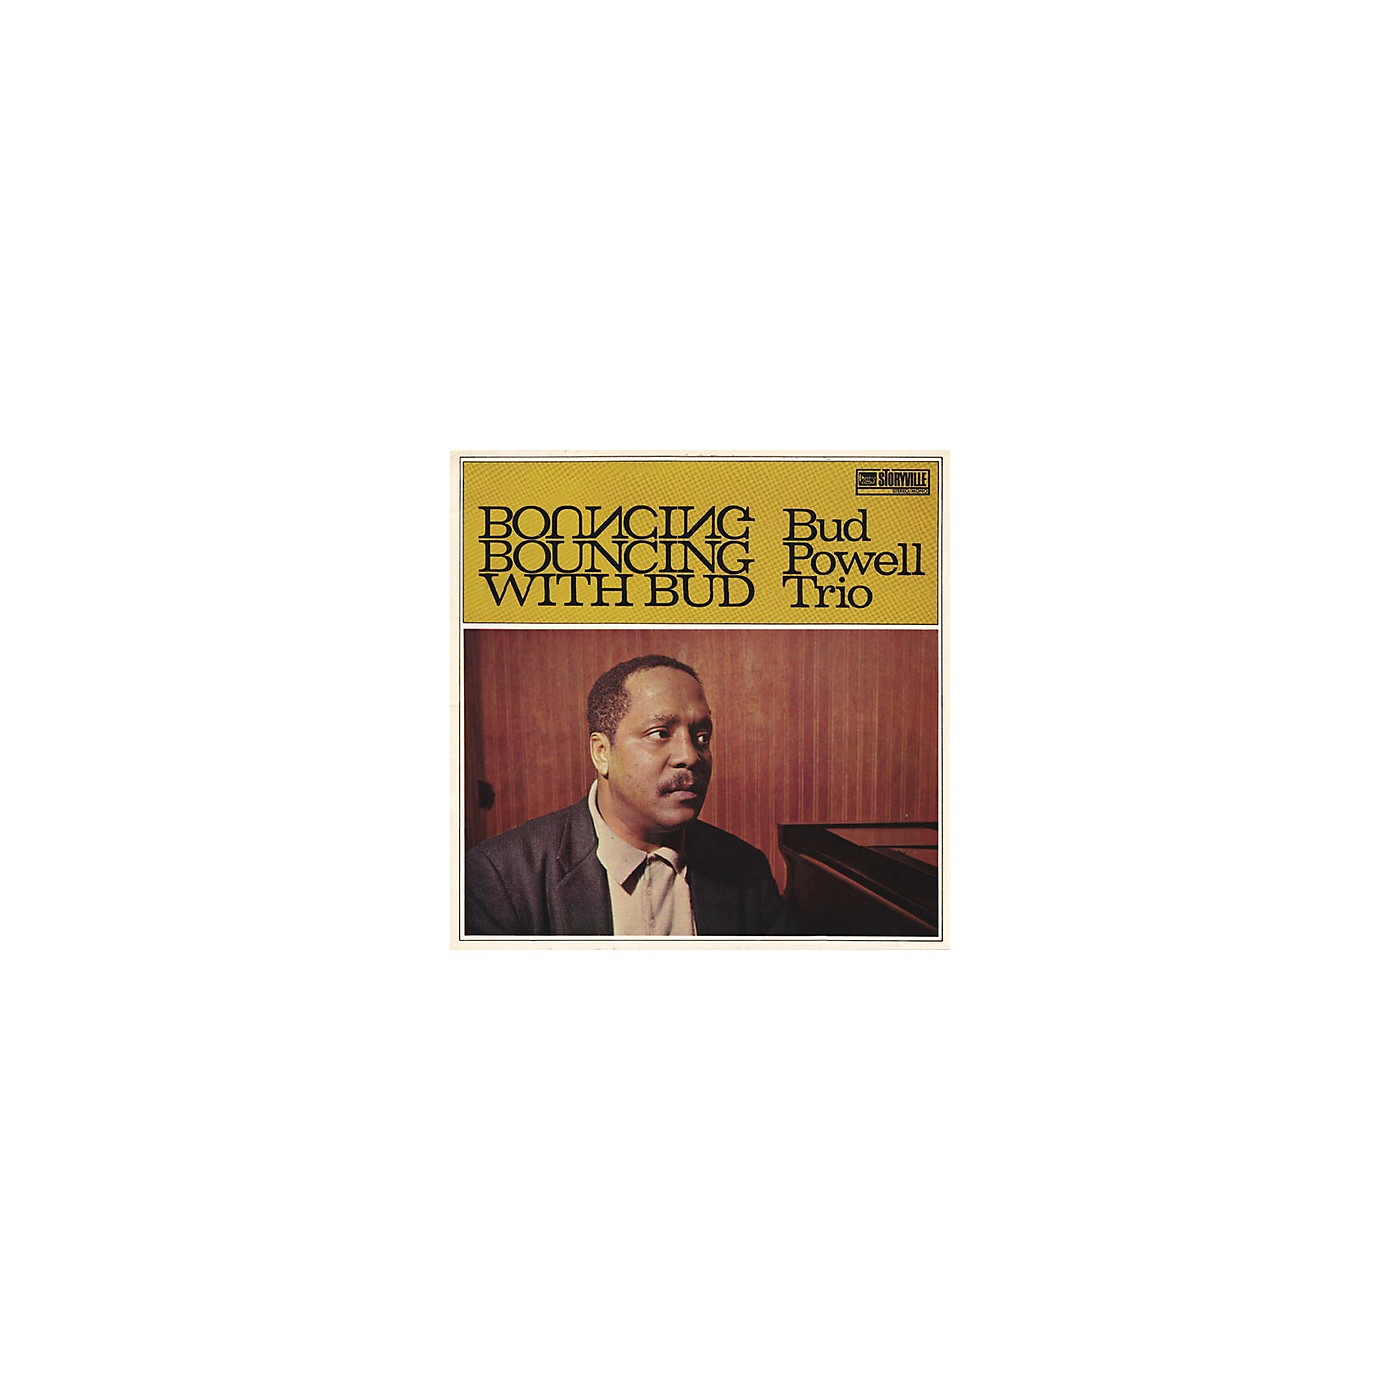 Alliance Bud Powell - Bouncing with Bud thumbnail